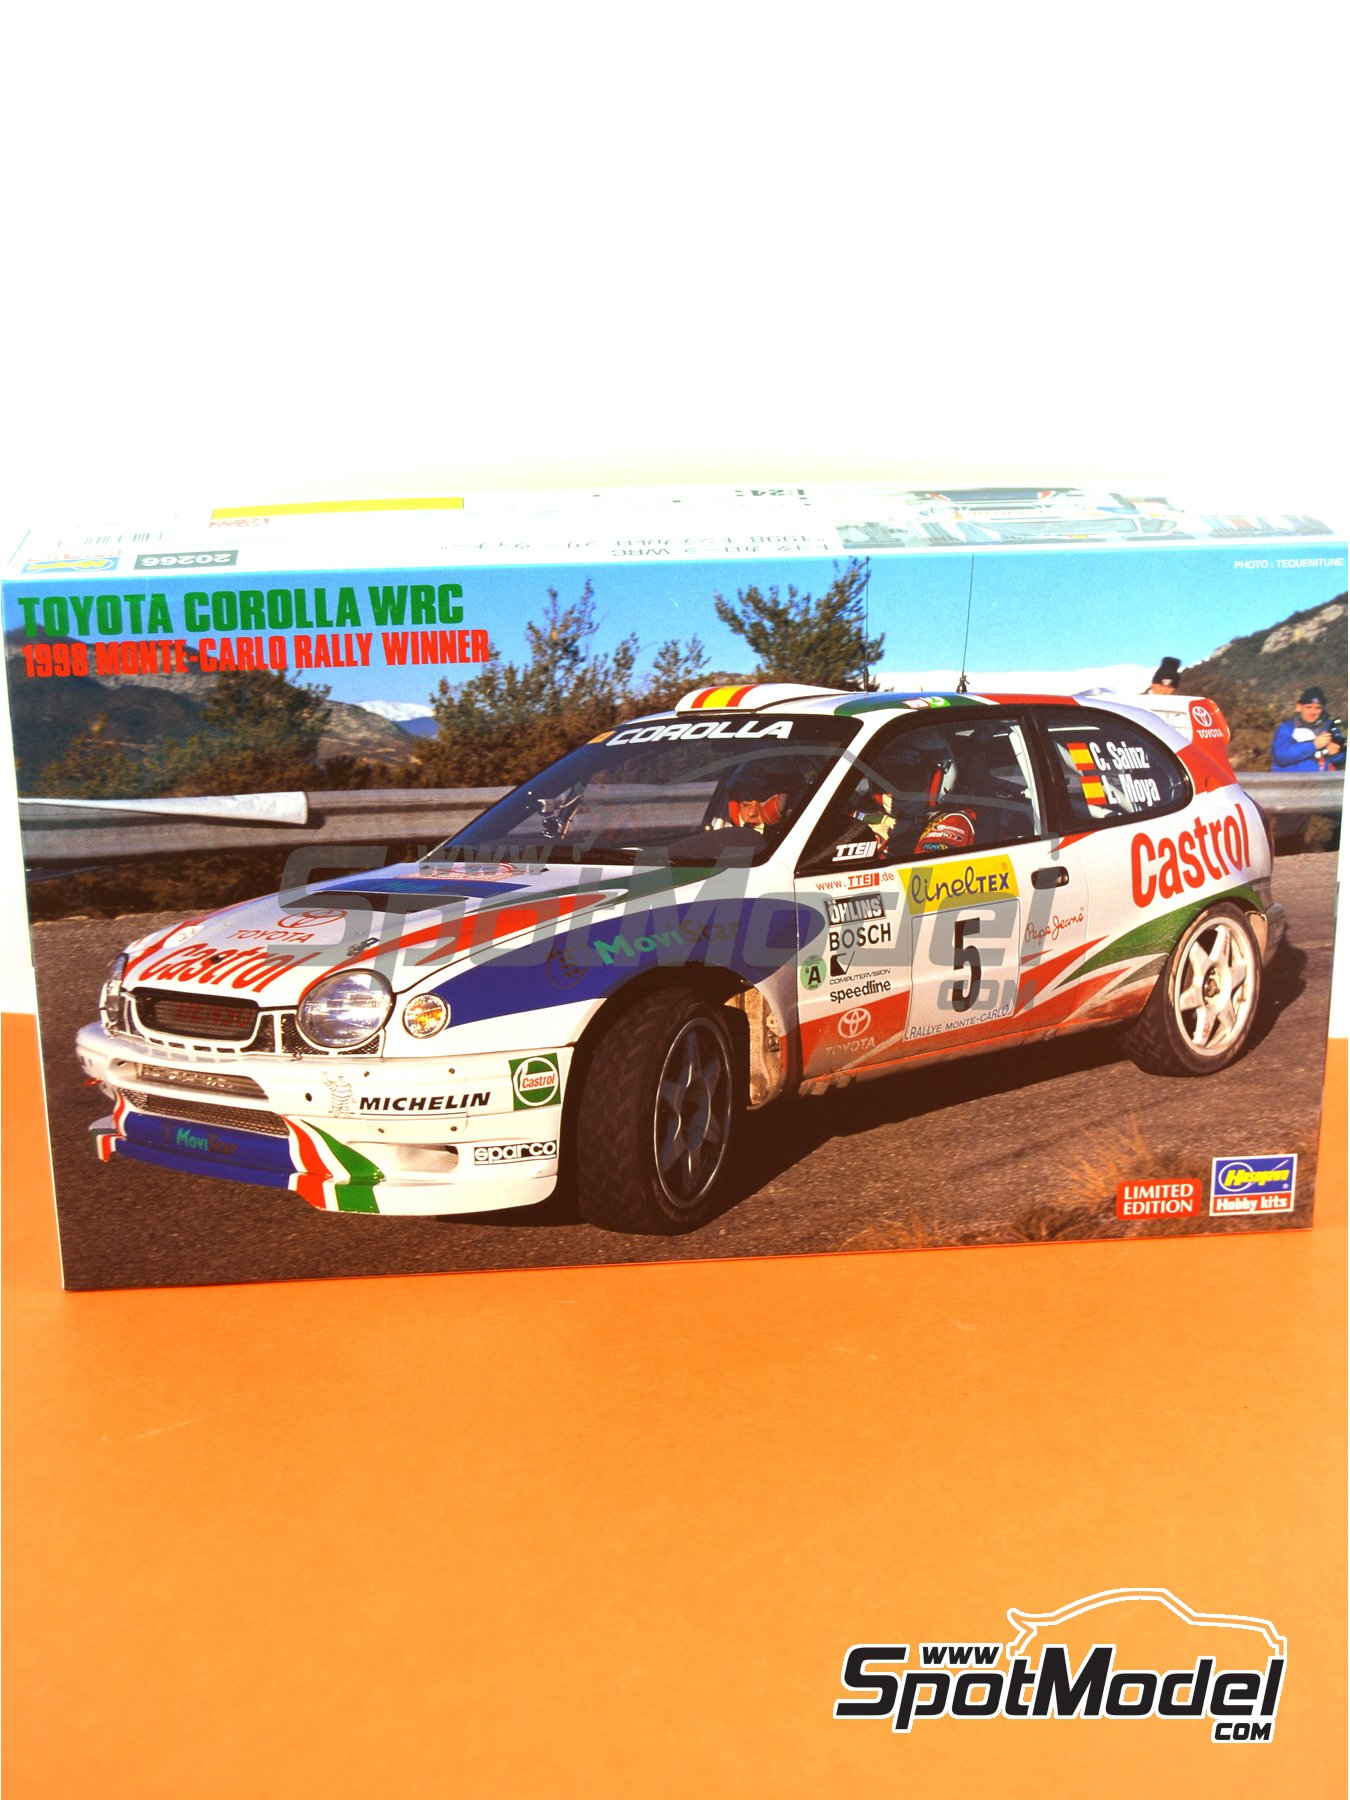 Toyota Corolla WRC Castrol Movistar - Montecarlo Rally 1998 | Model car kit in 1/24 scale manufactured by Hasegawa (ref. 20266) image